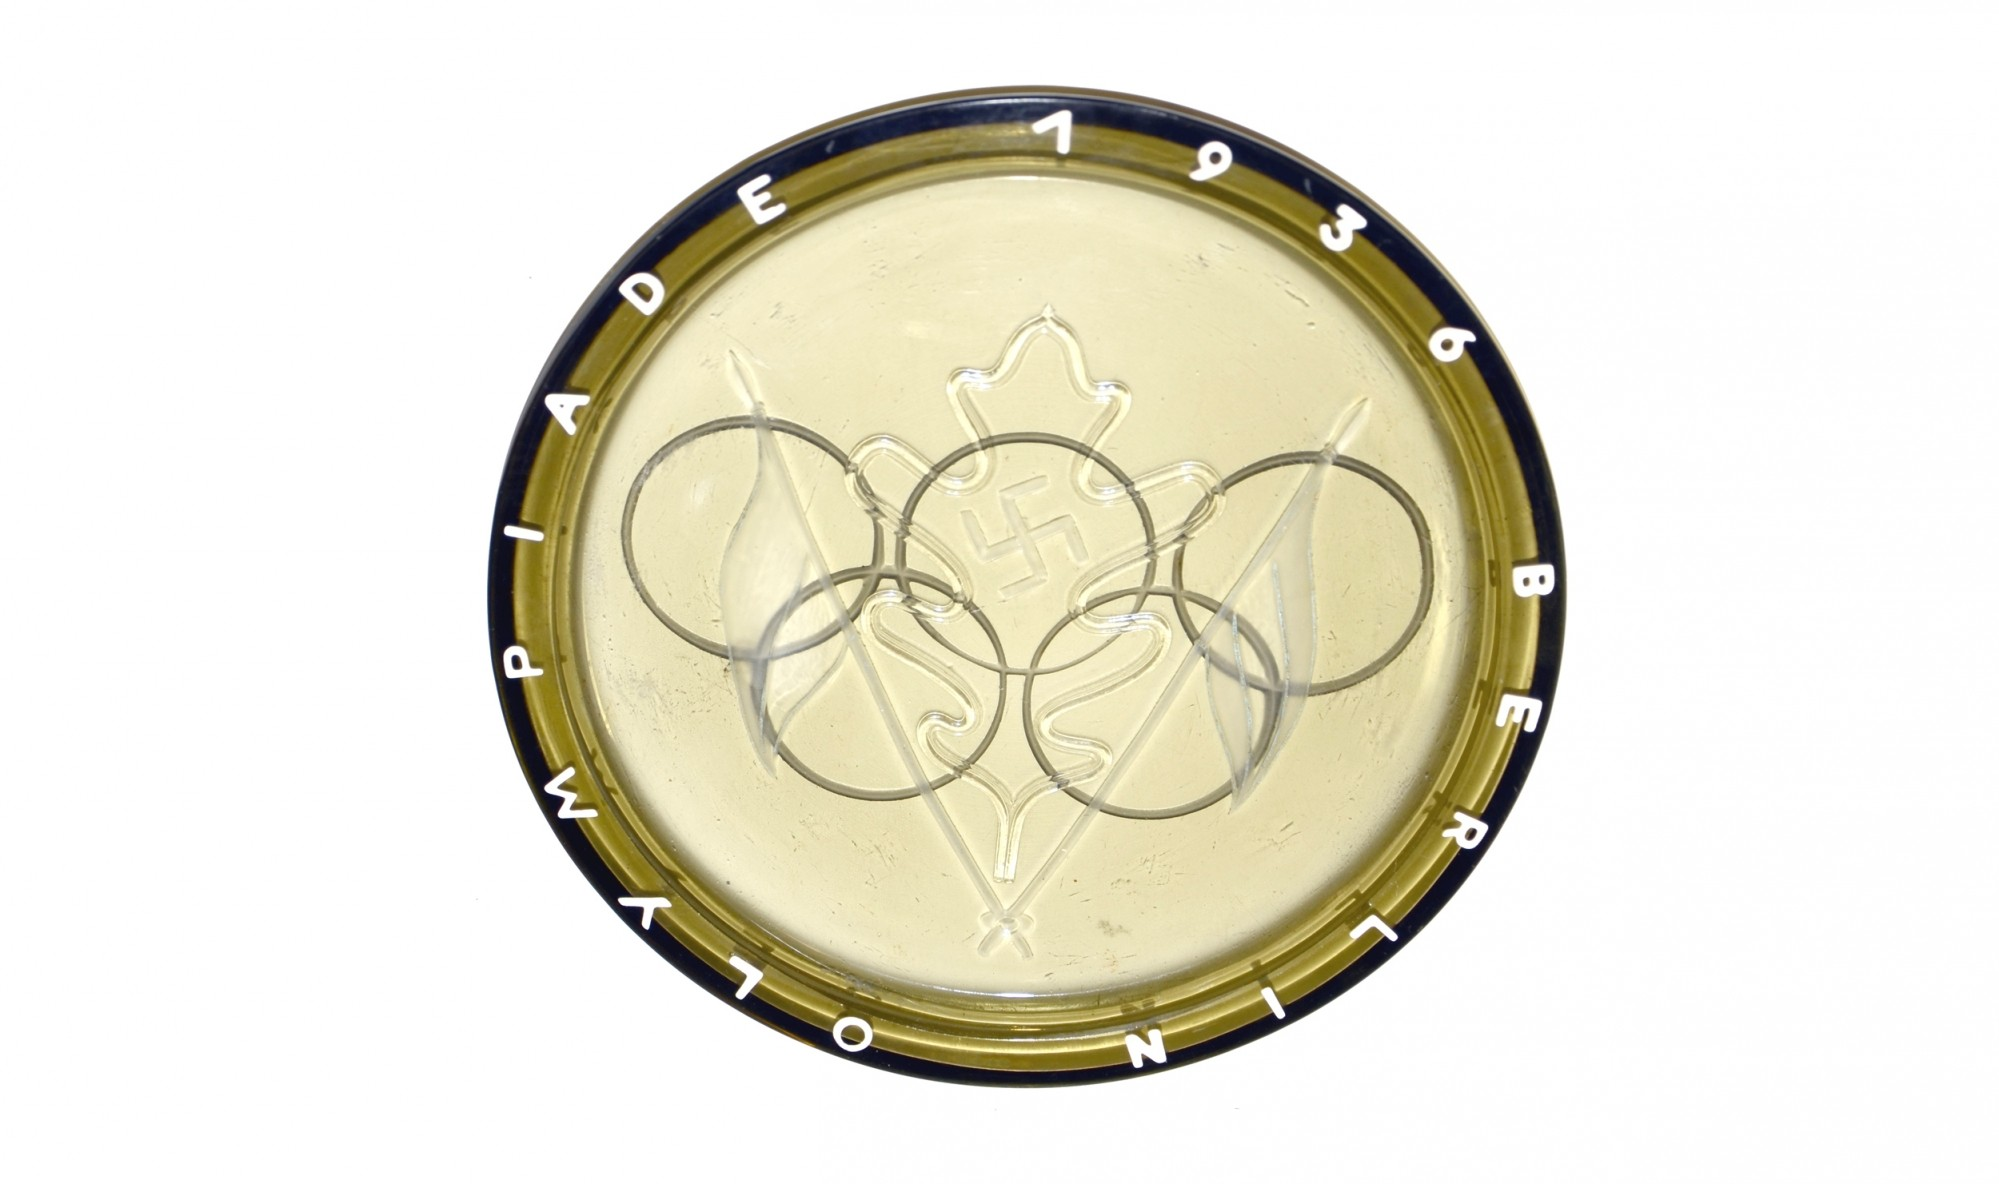 GLASS PLATE/ASHTRAY FROM THE BERLIN OLYMPICS OF 1936